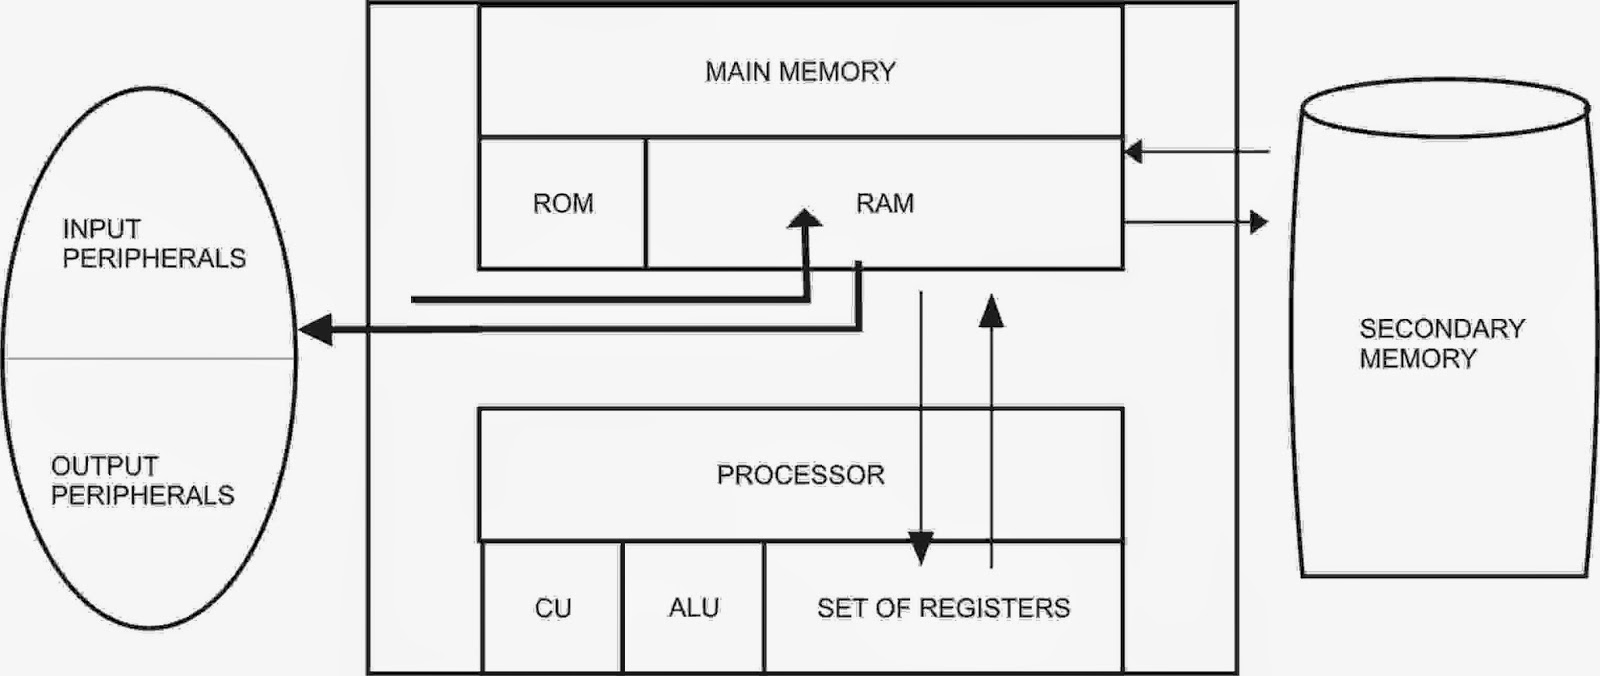 in this block diagram, the main hardware components of a typical computer  system are connected together alongwith their subparts in such a way that  the